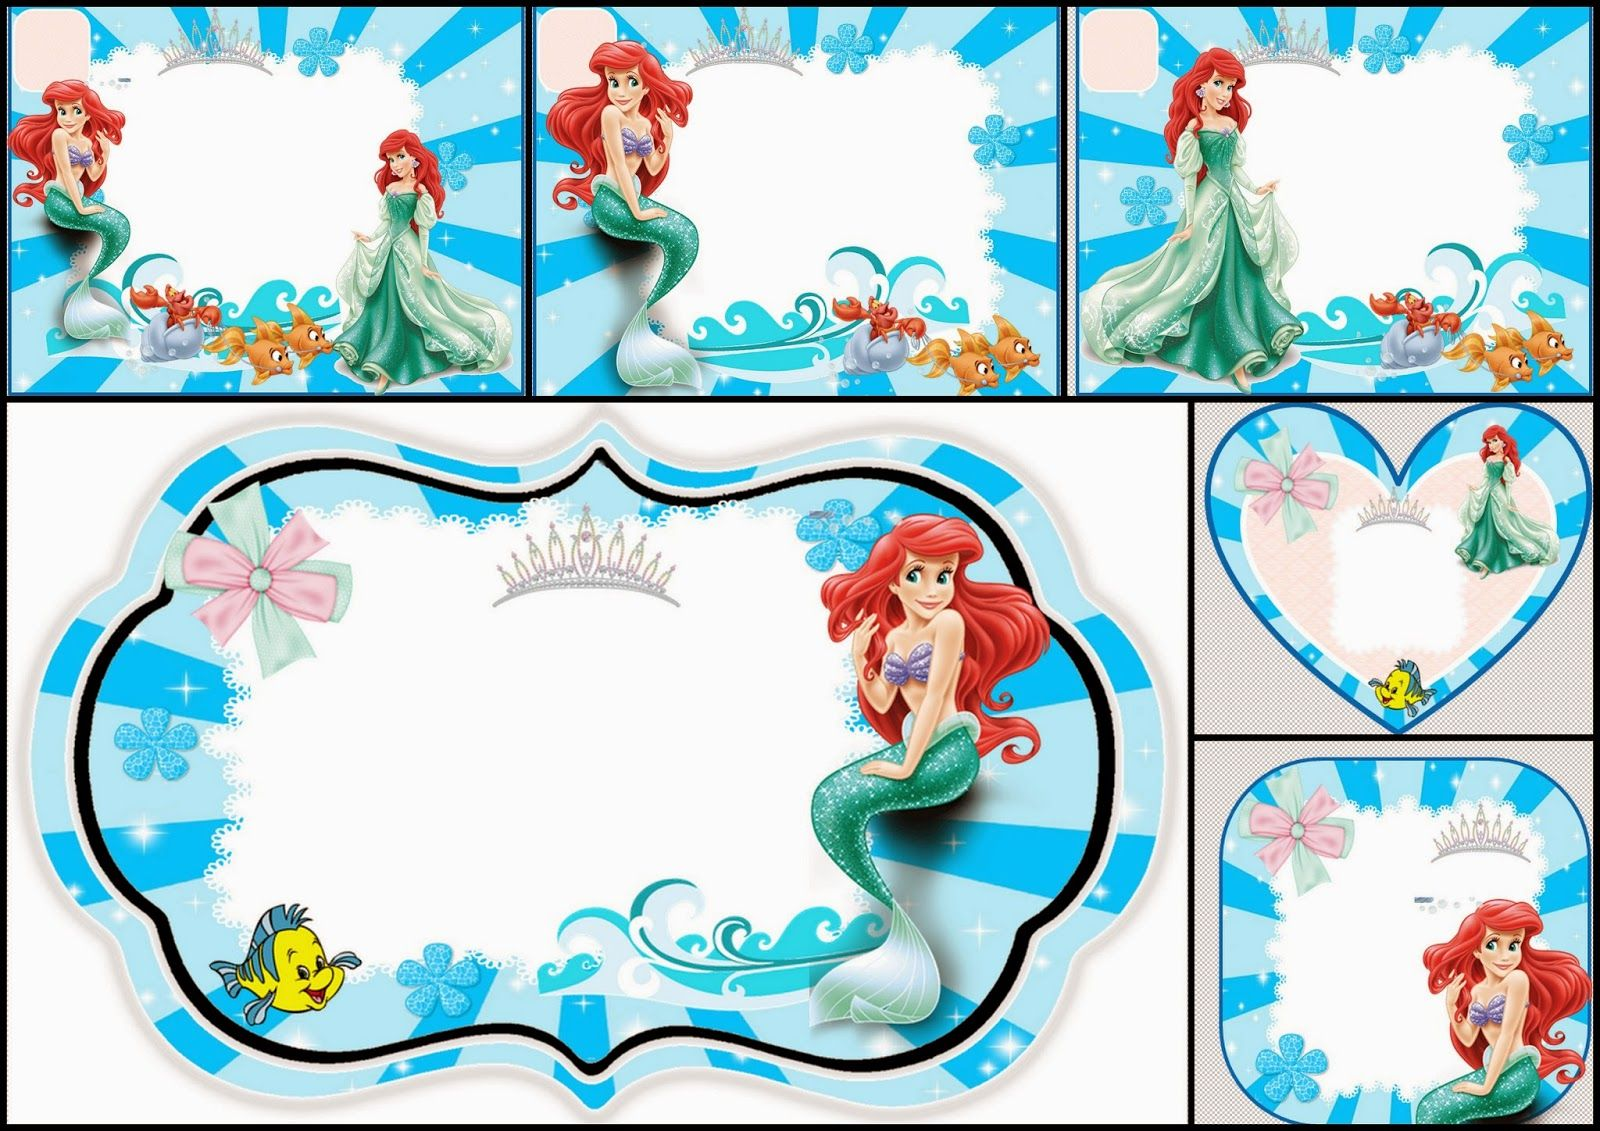 The Little Mermaid Free Printable Invitations, Cards or Photo Frames ...